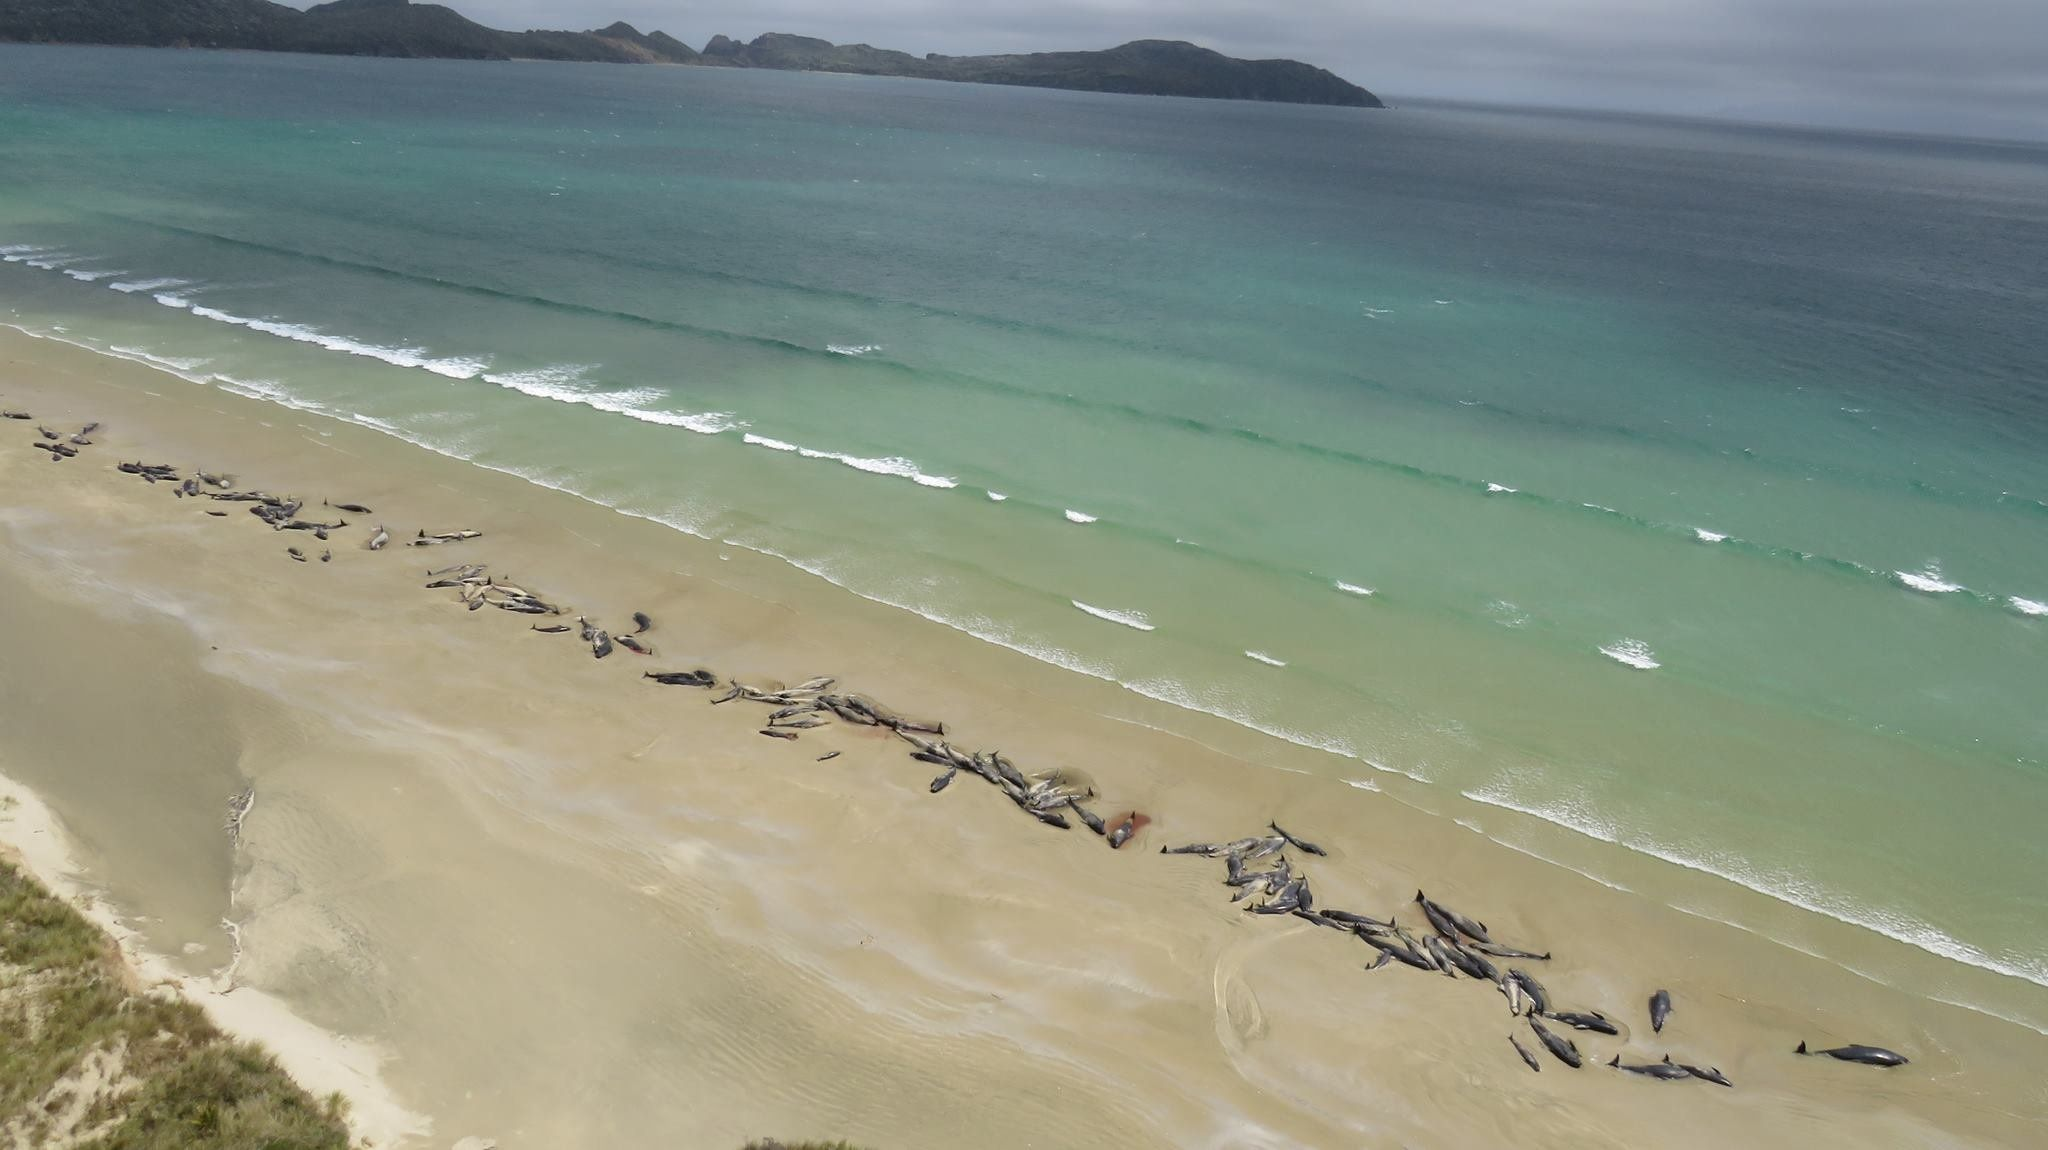 Almost half of the whales were already dead by the time they were